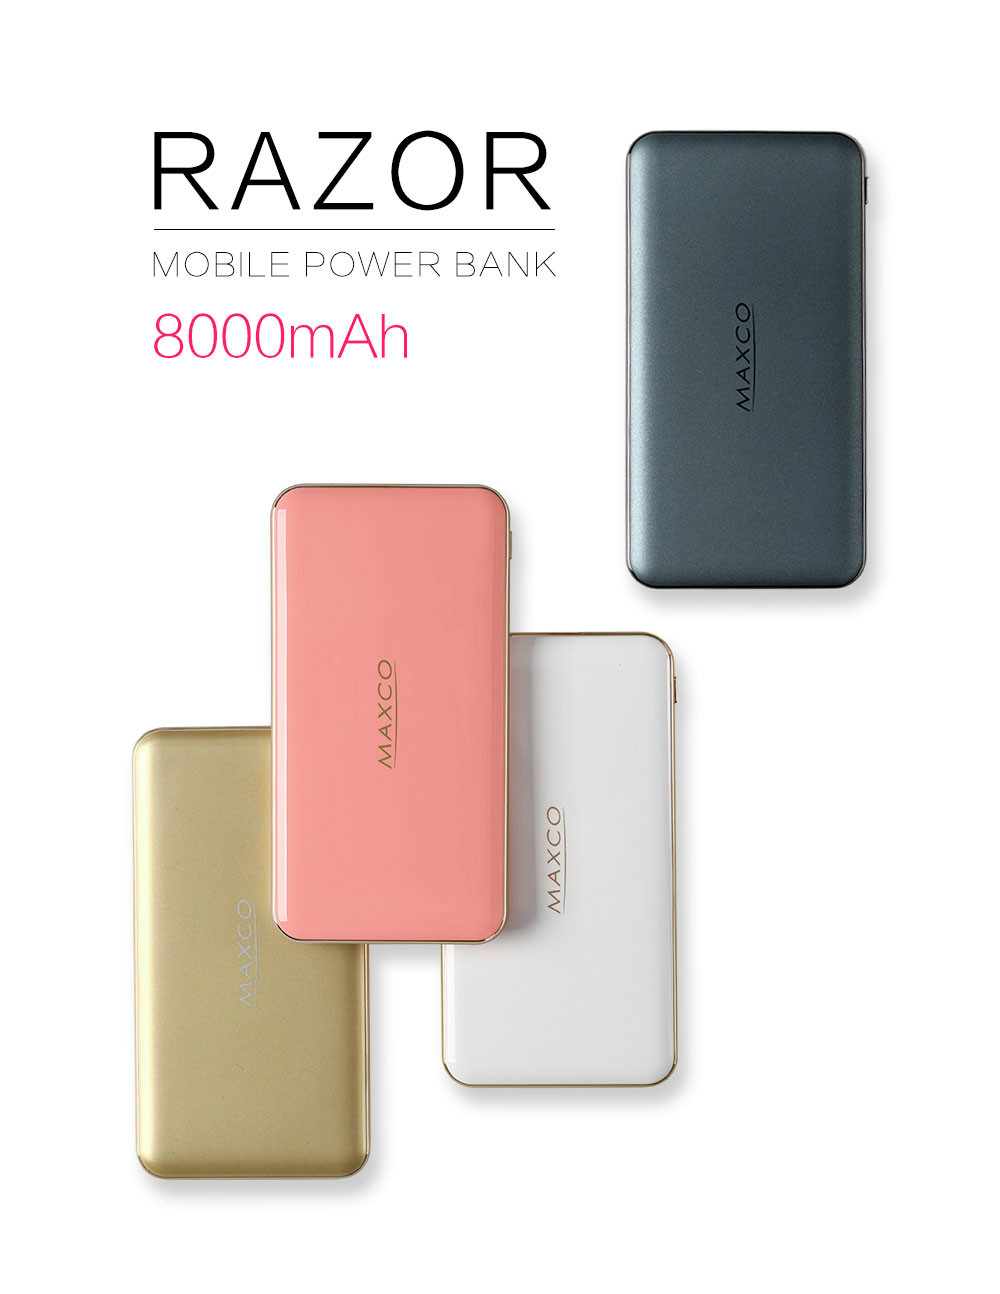 Maxco fast charging power bank 8000mah for mobile phone